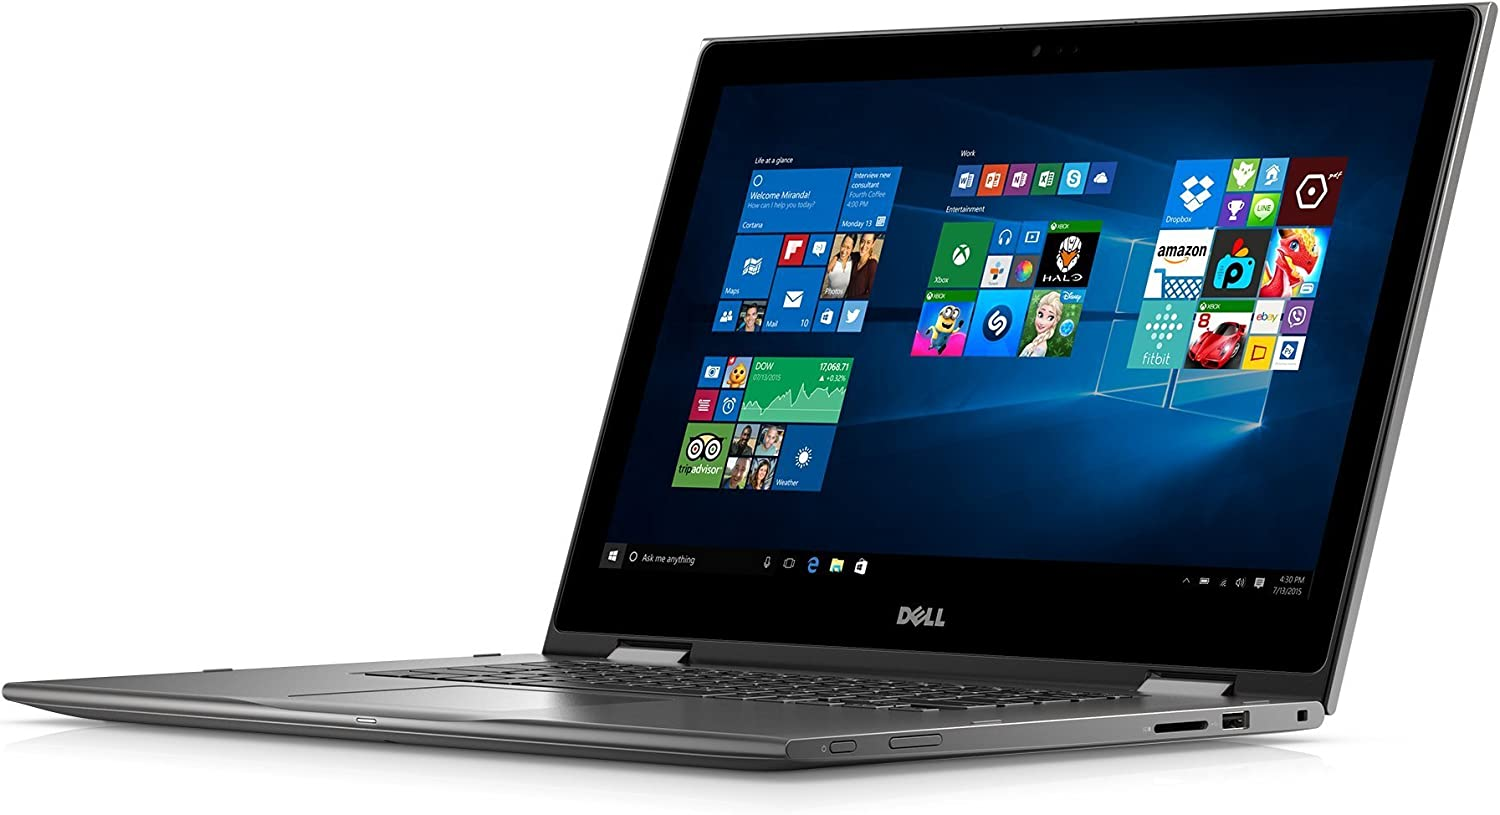 "Dell i5568-0463GRY 15.6"" FHD 2-in-1 Laptop (Intel Core i3-6100U 2.3GHz Processor, 4 GB RAM, 500 GB HDD, Windows 10) Gray"